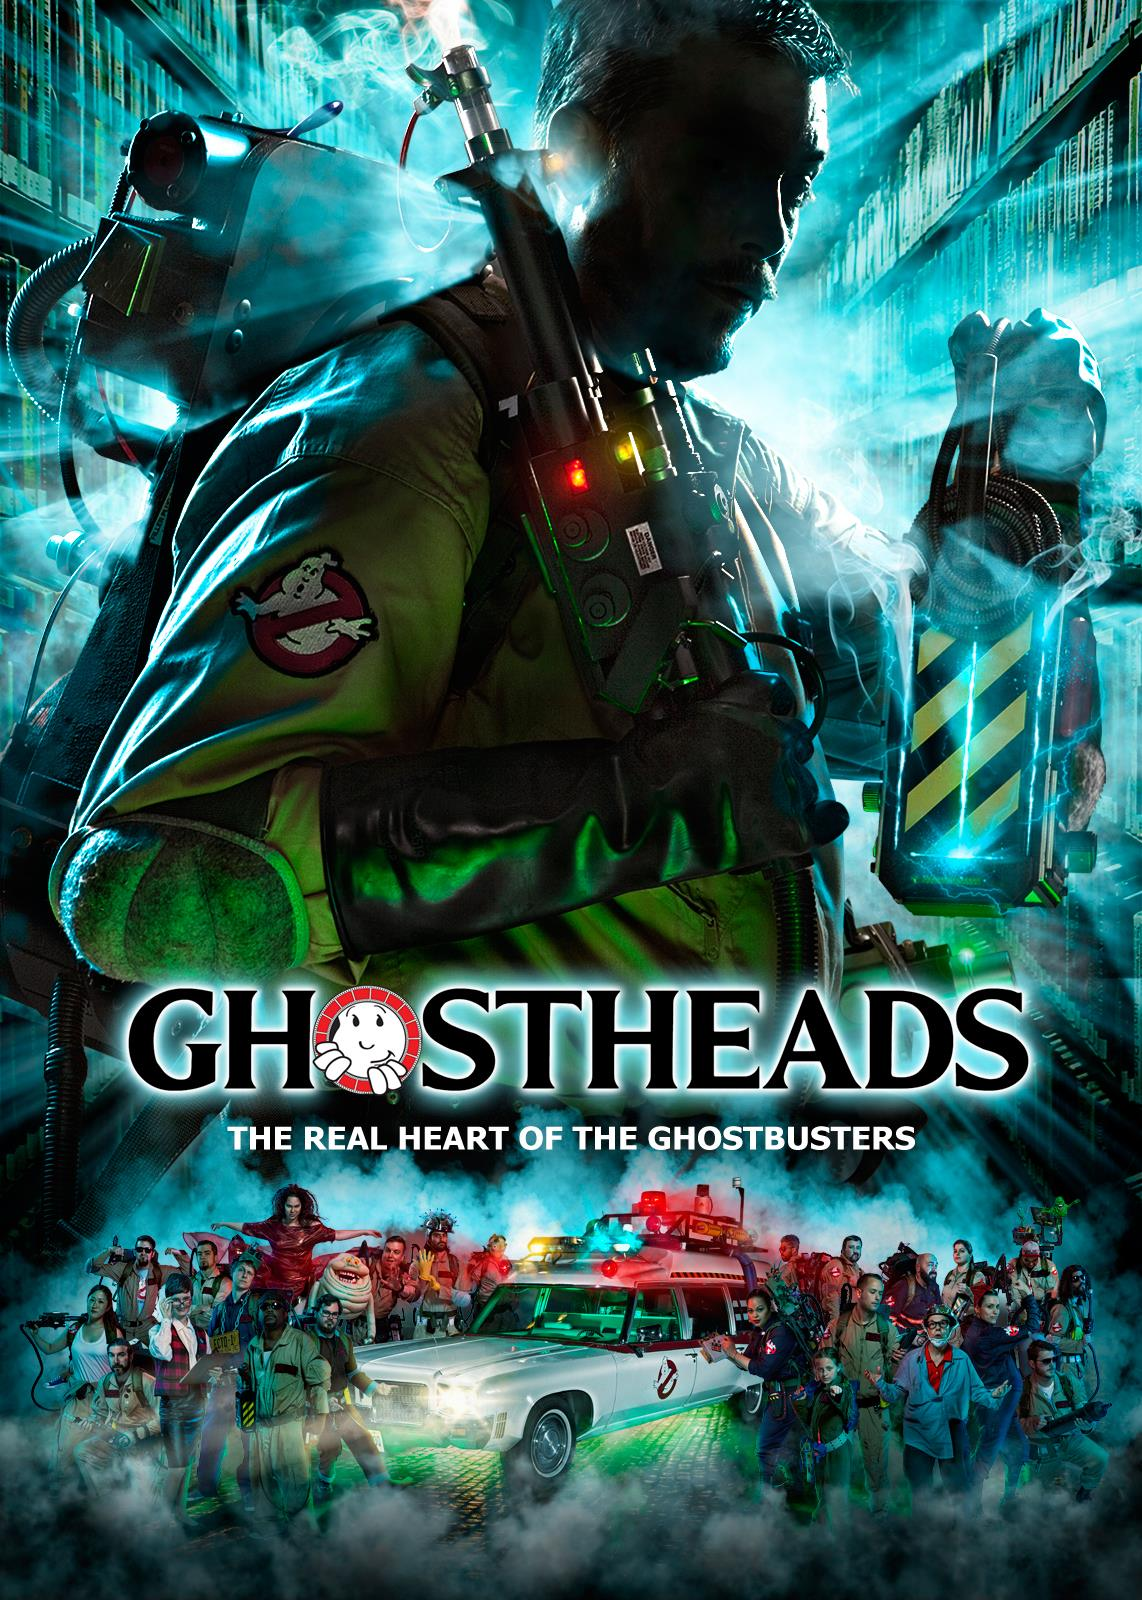 image Ghostheads Watch Full Movie Free Online